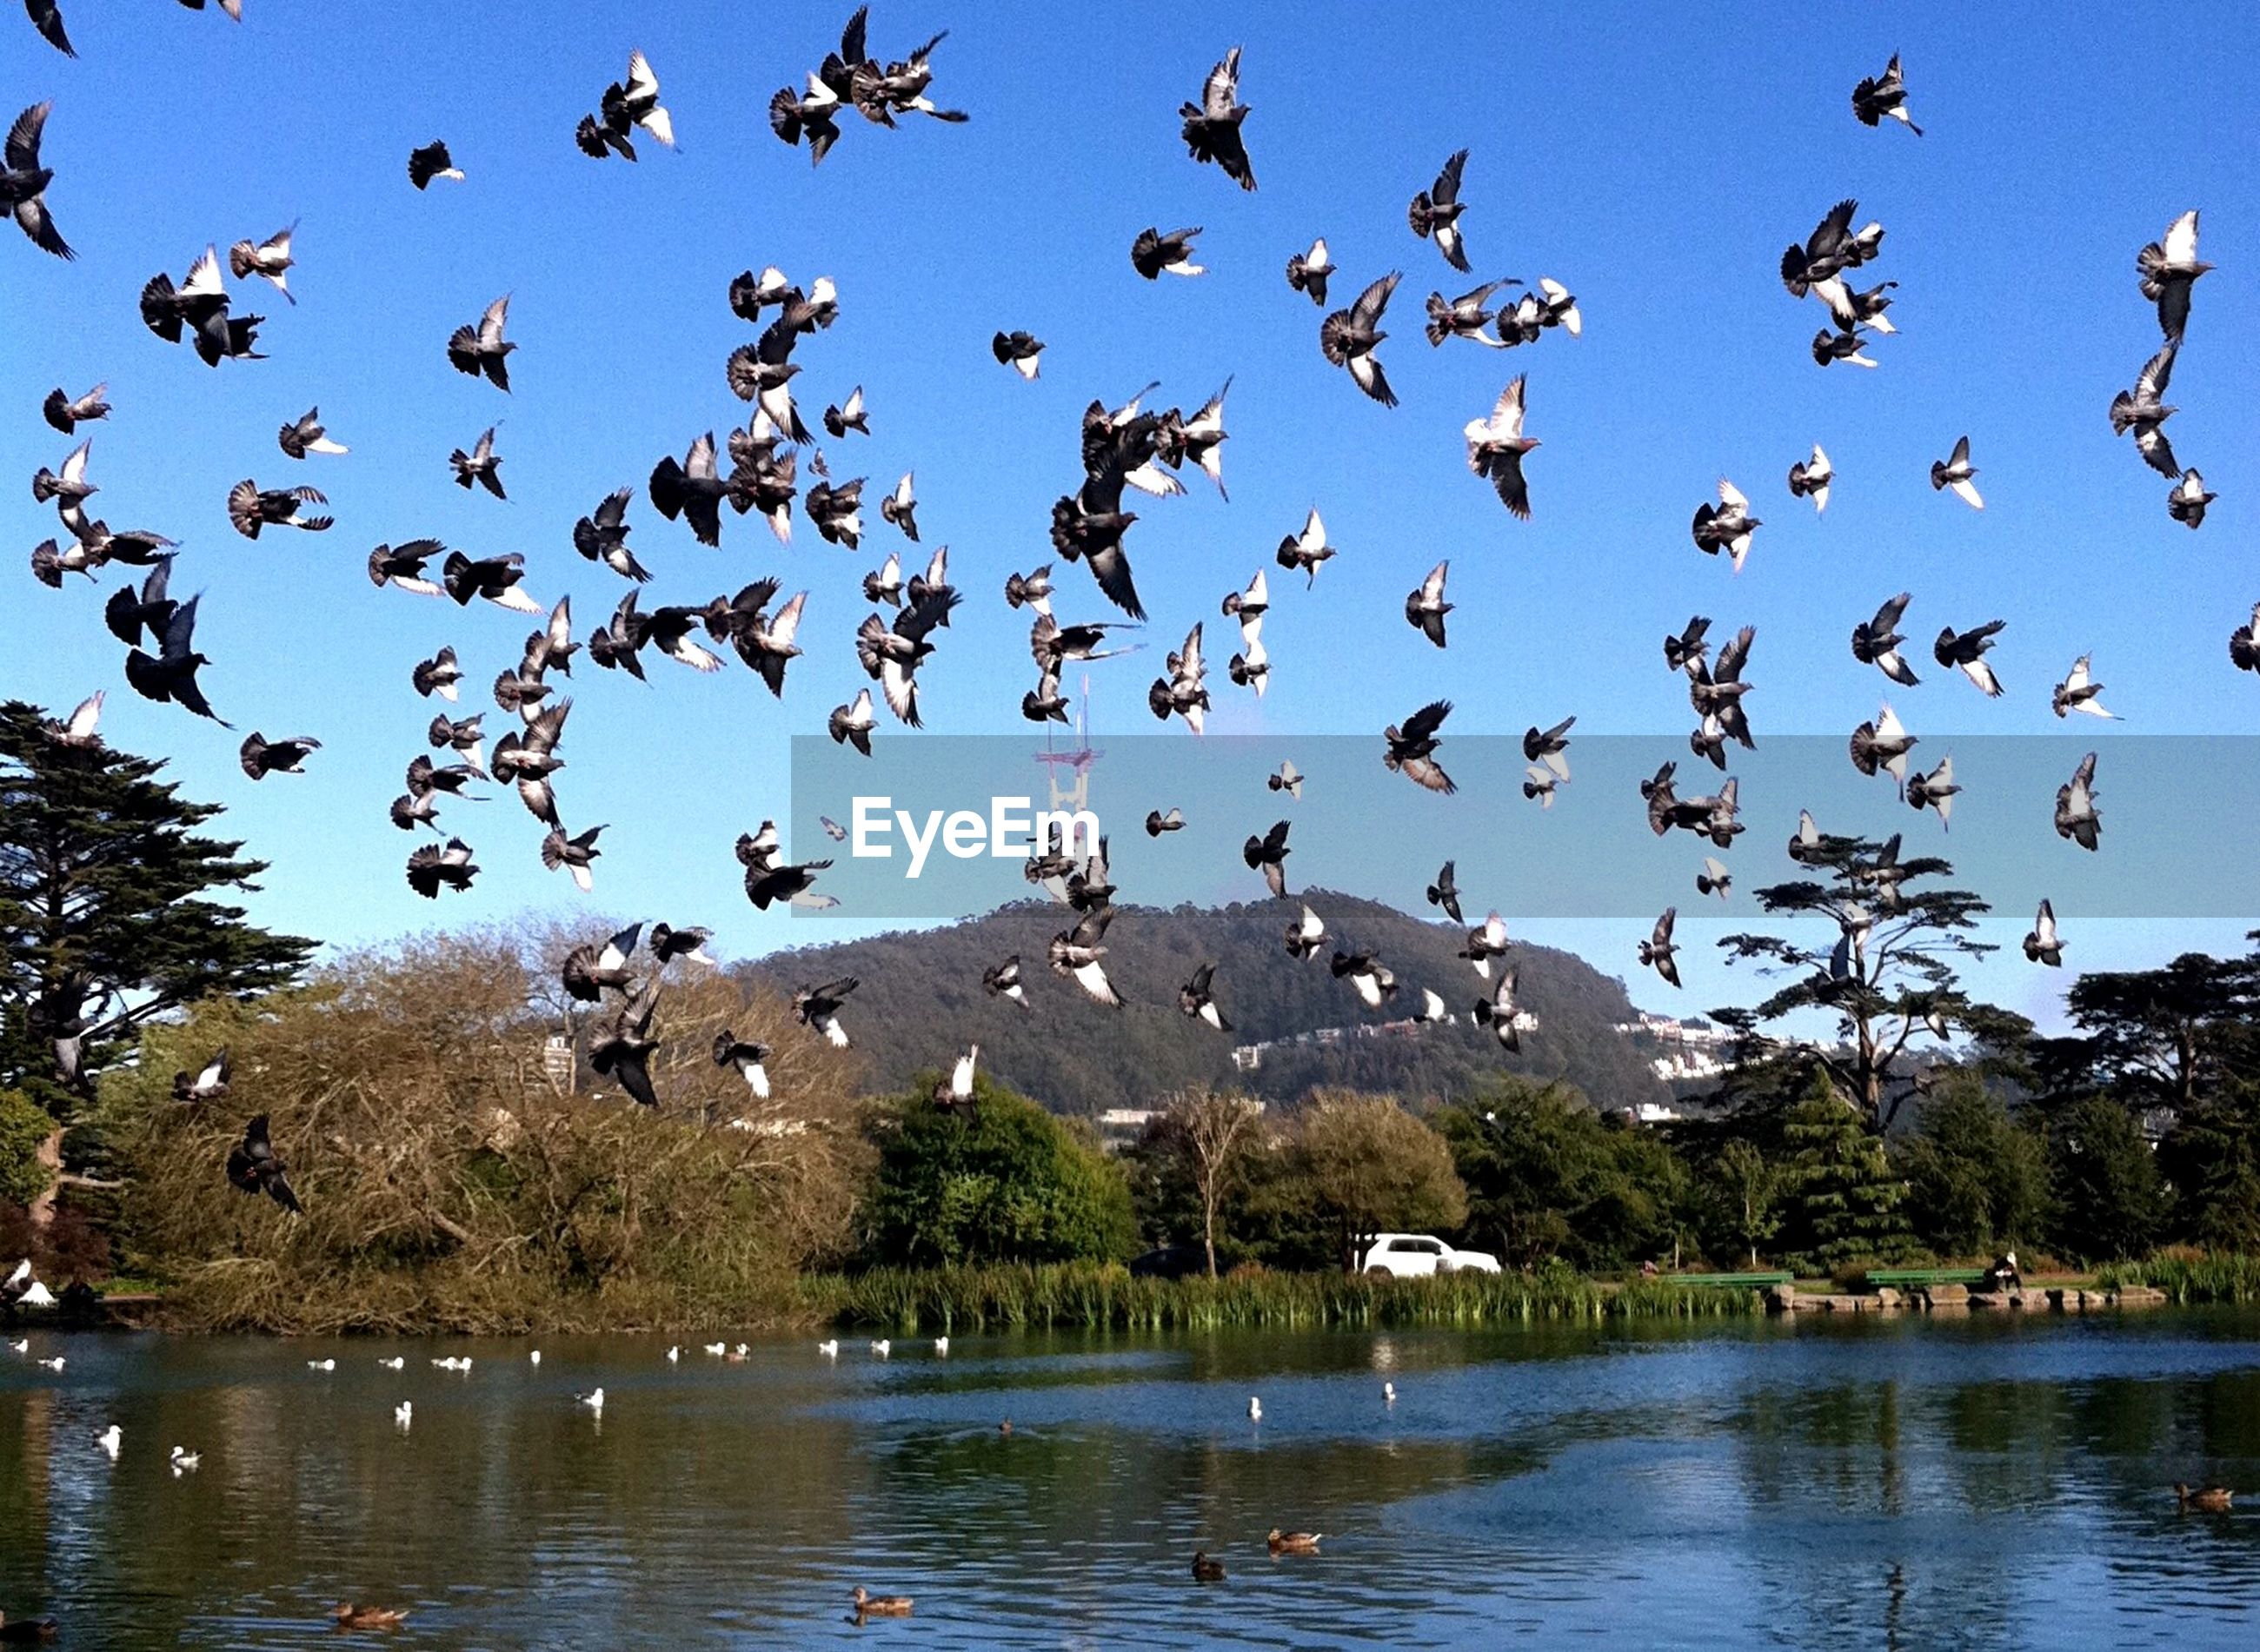 Low angle view of pigeons flying over lake